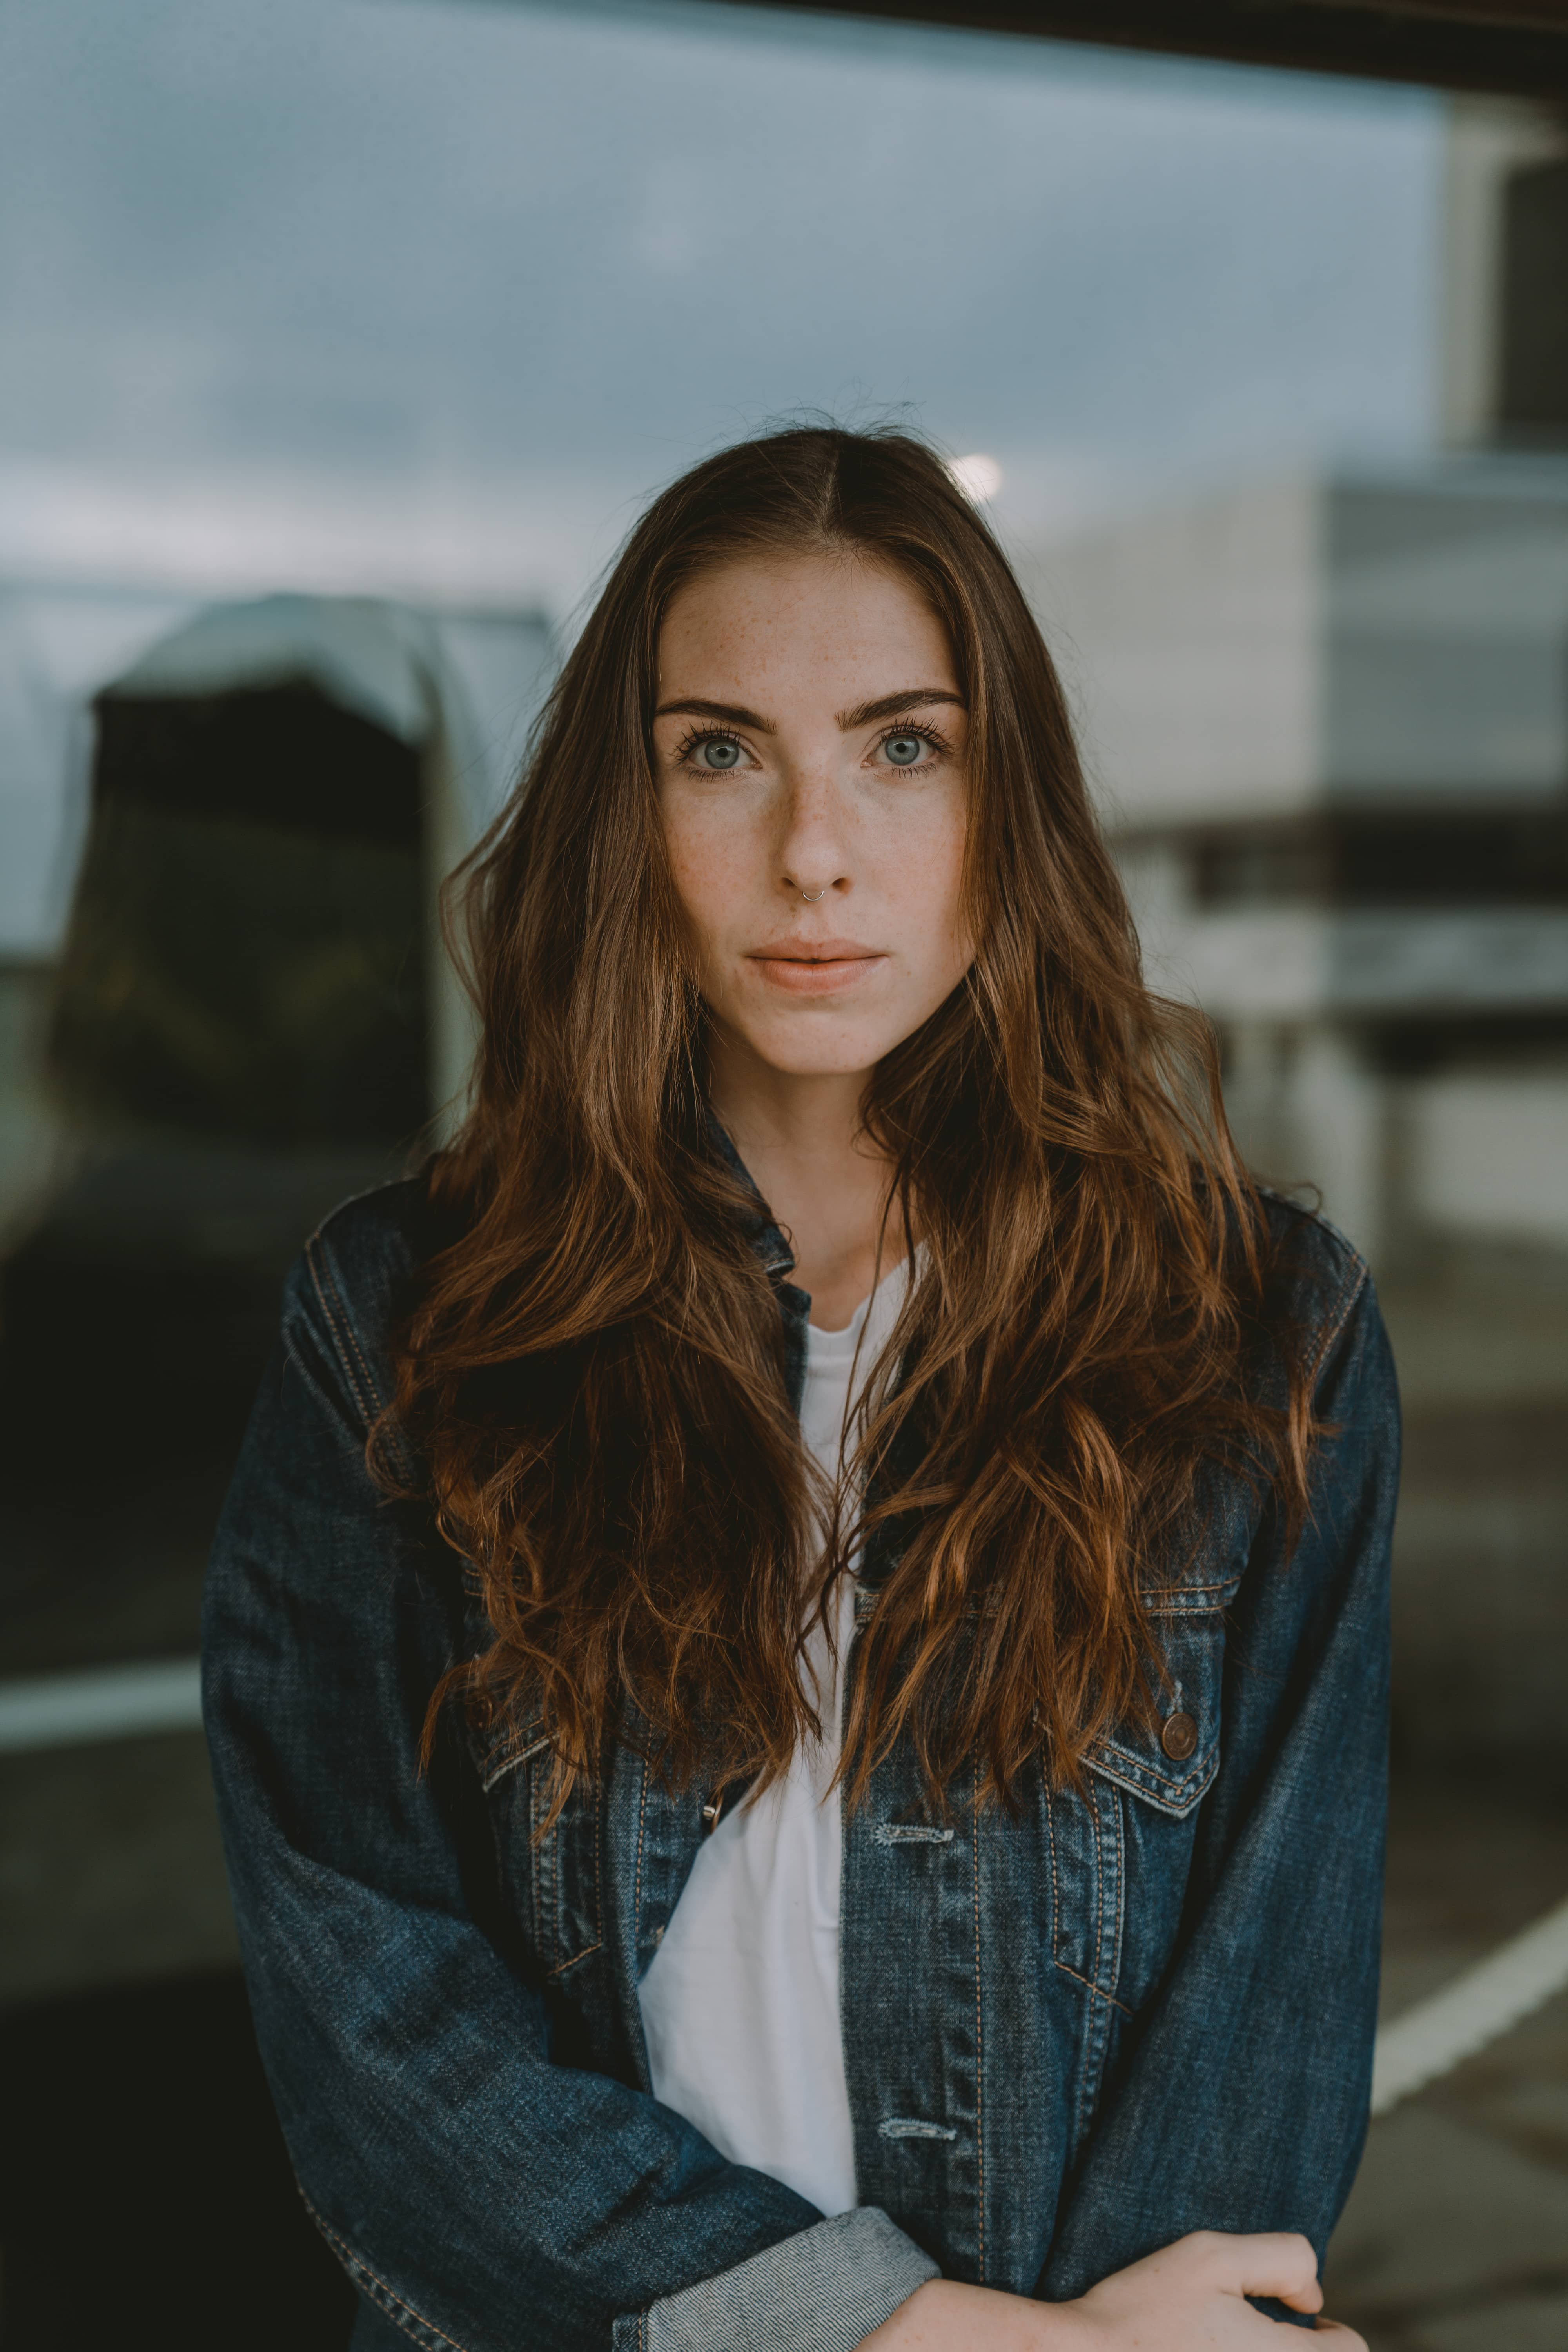 women with brown hair wearing a jeans jacket standing in front of glass